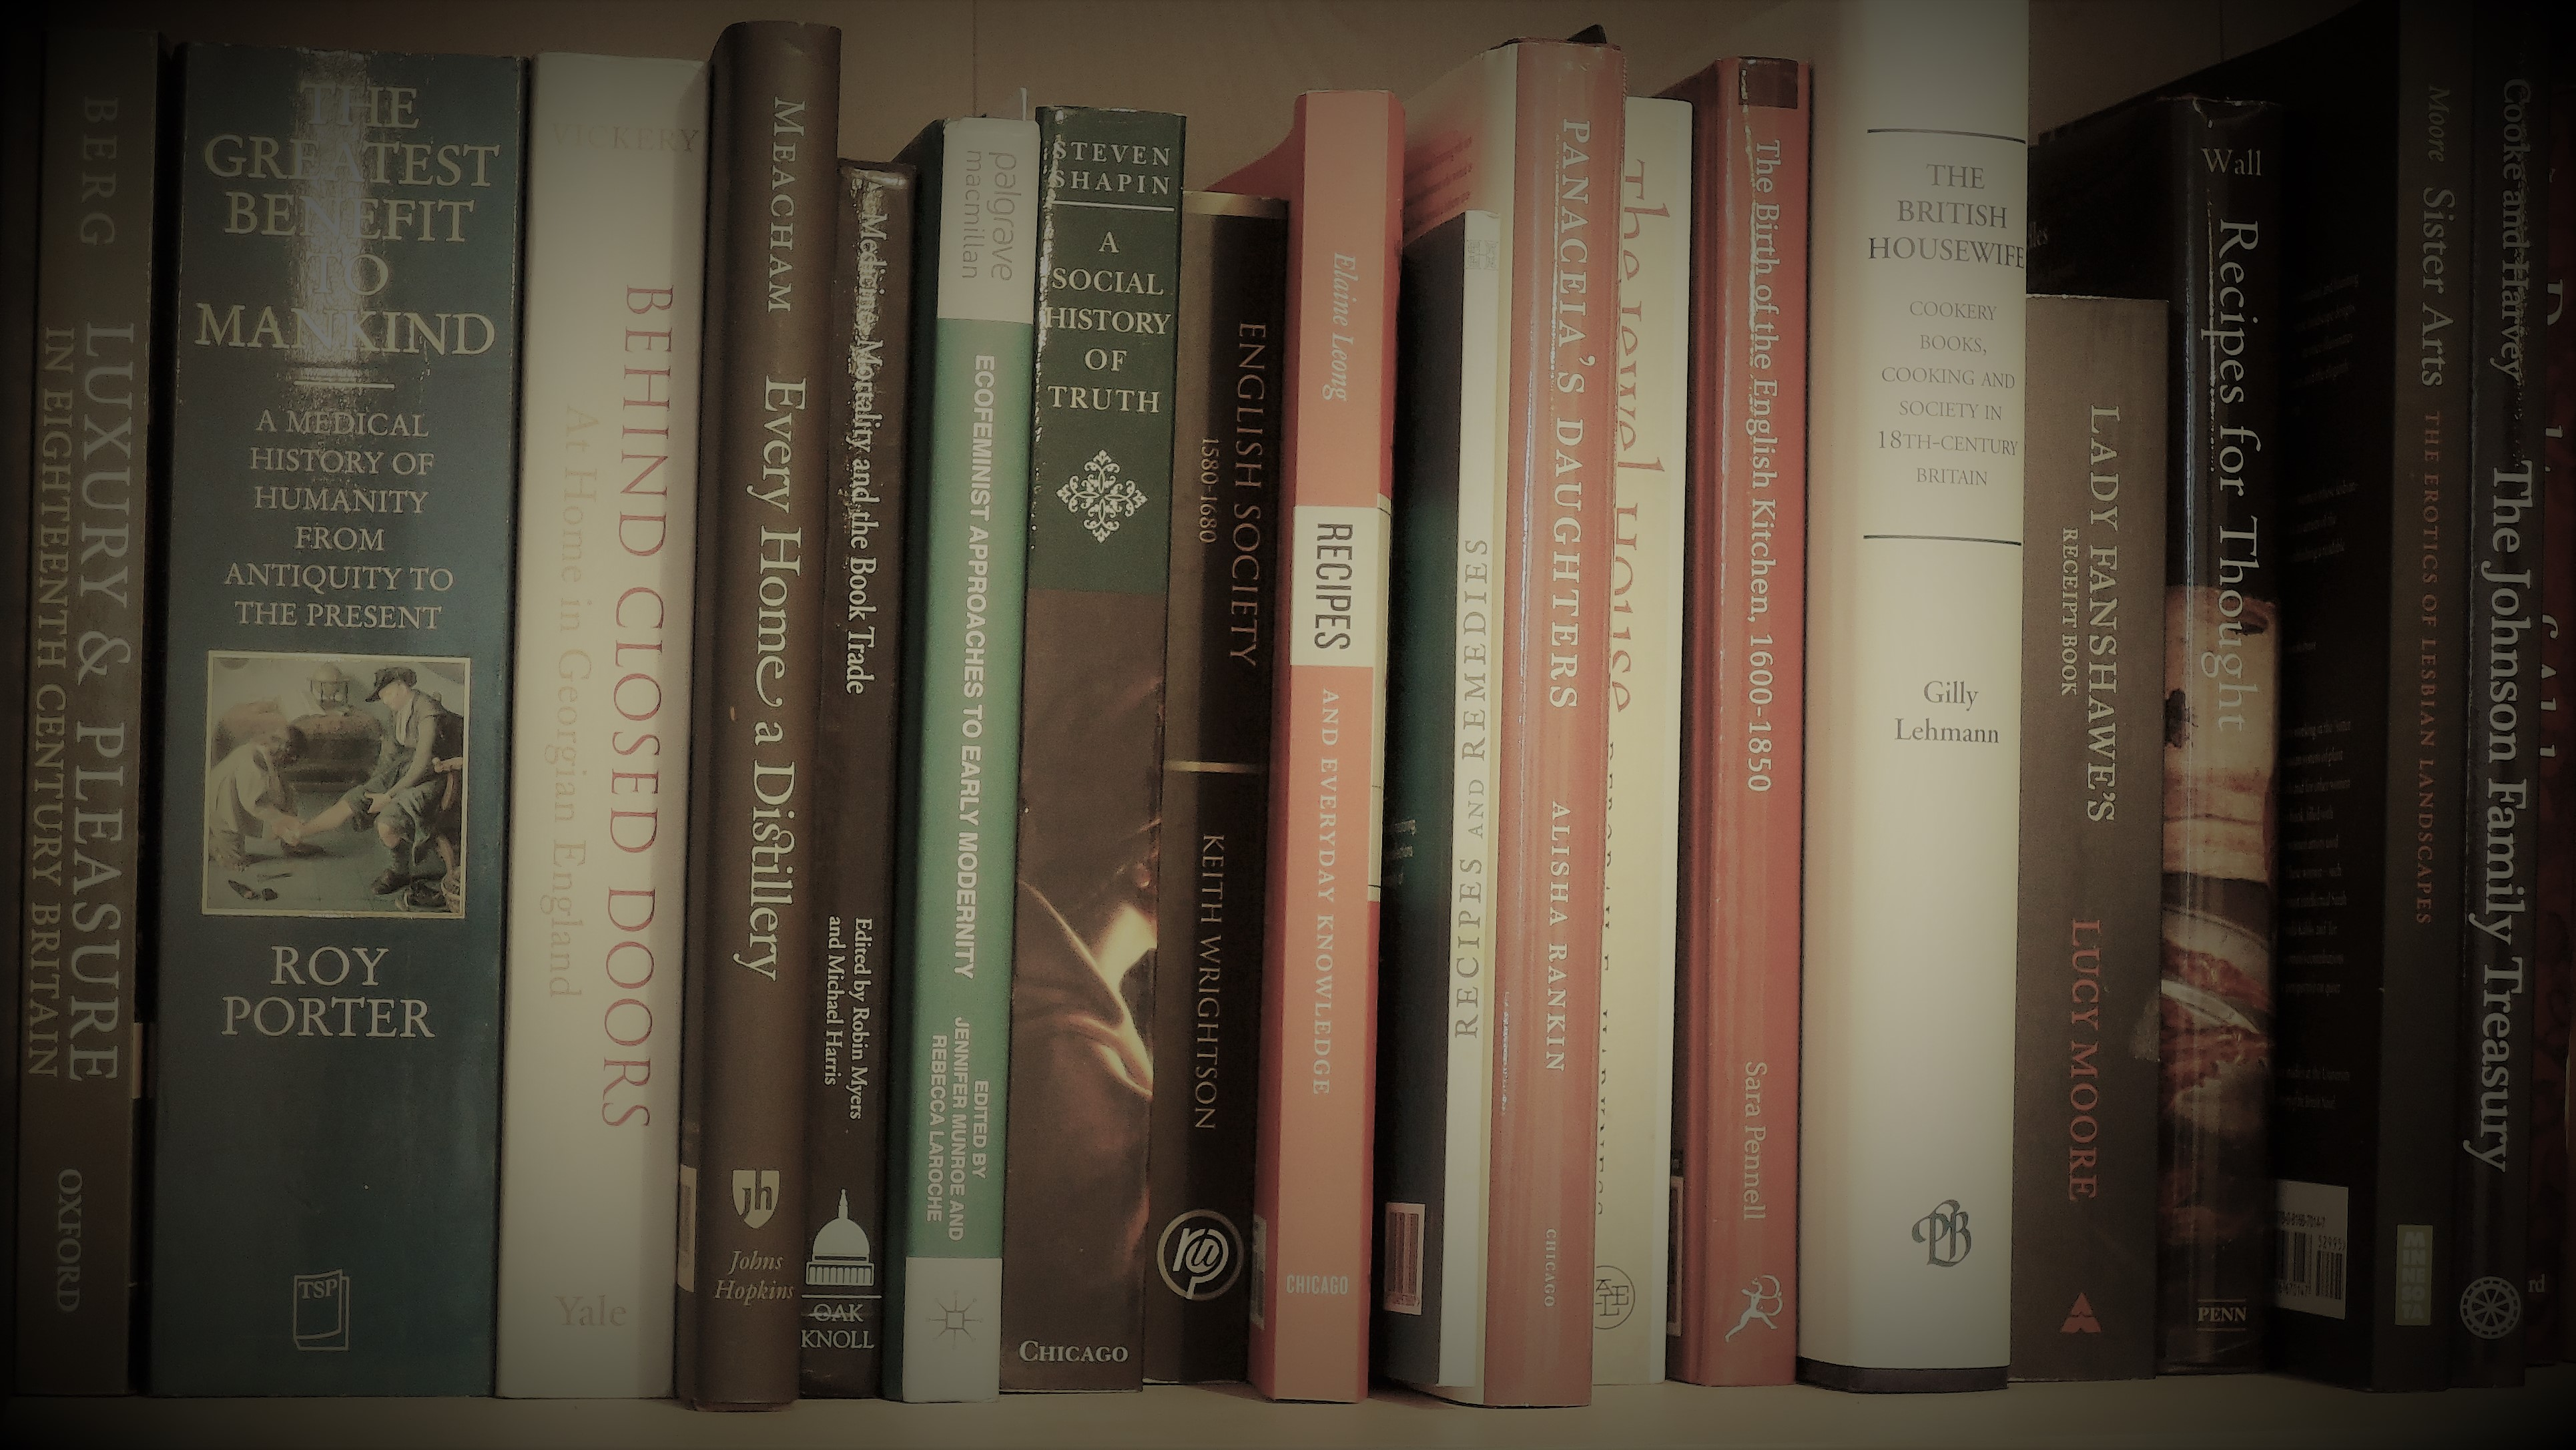 Books - Is minimalism helpful or detrimental to sustainable living?